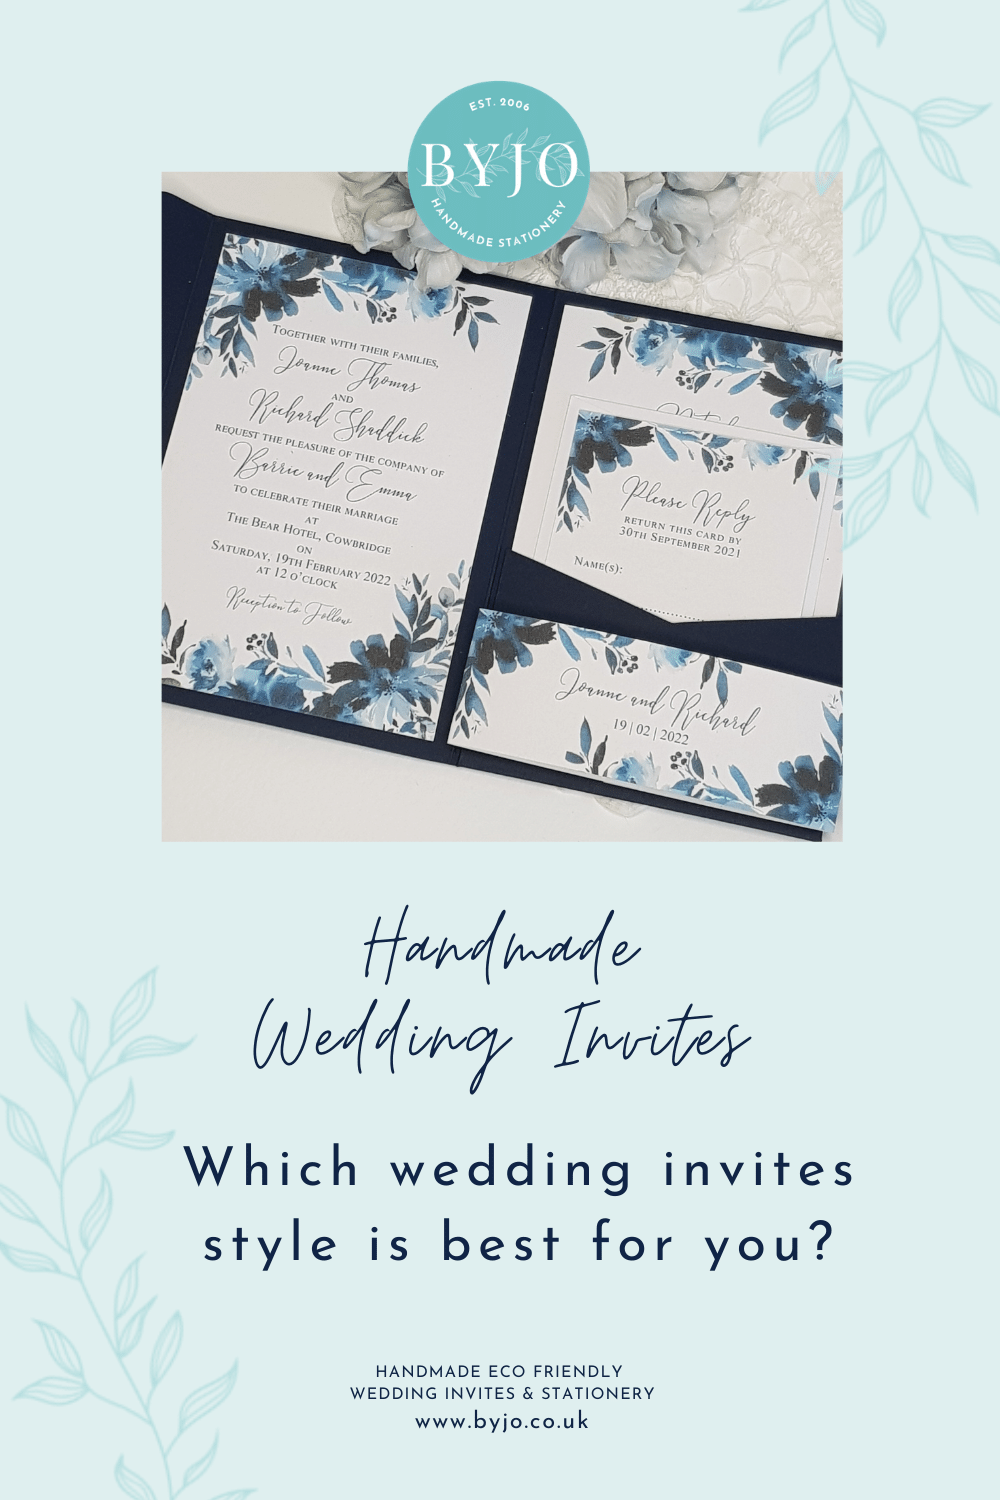 a graphic asking which wedding invite style is best for you